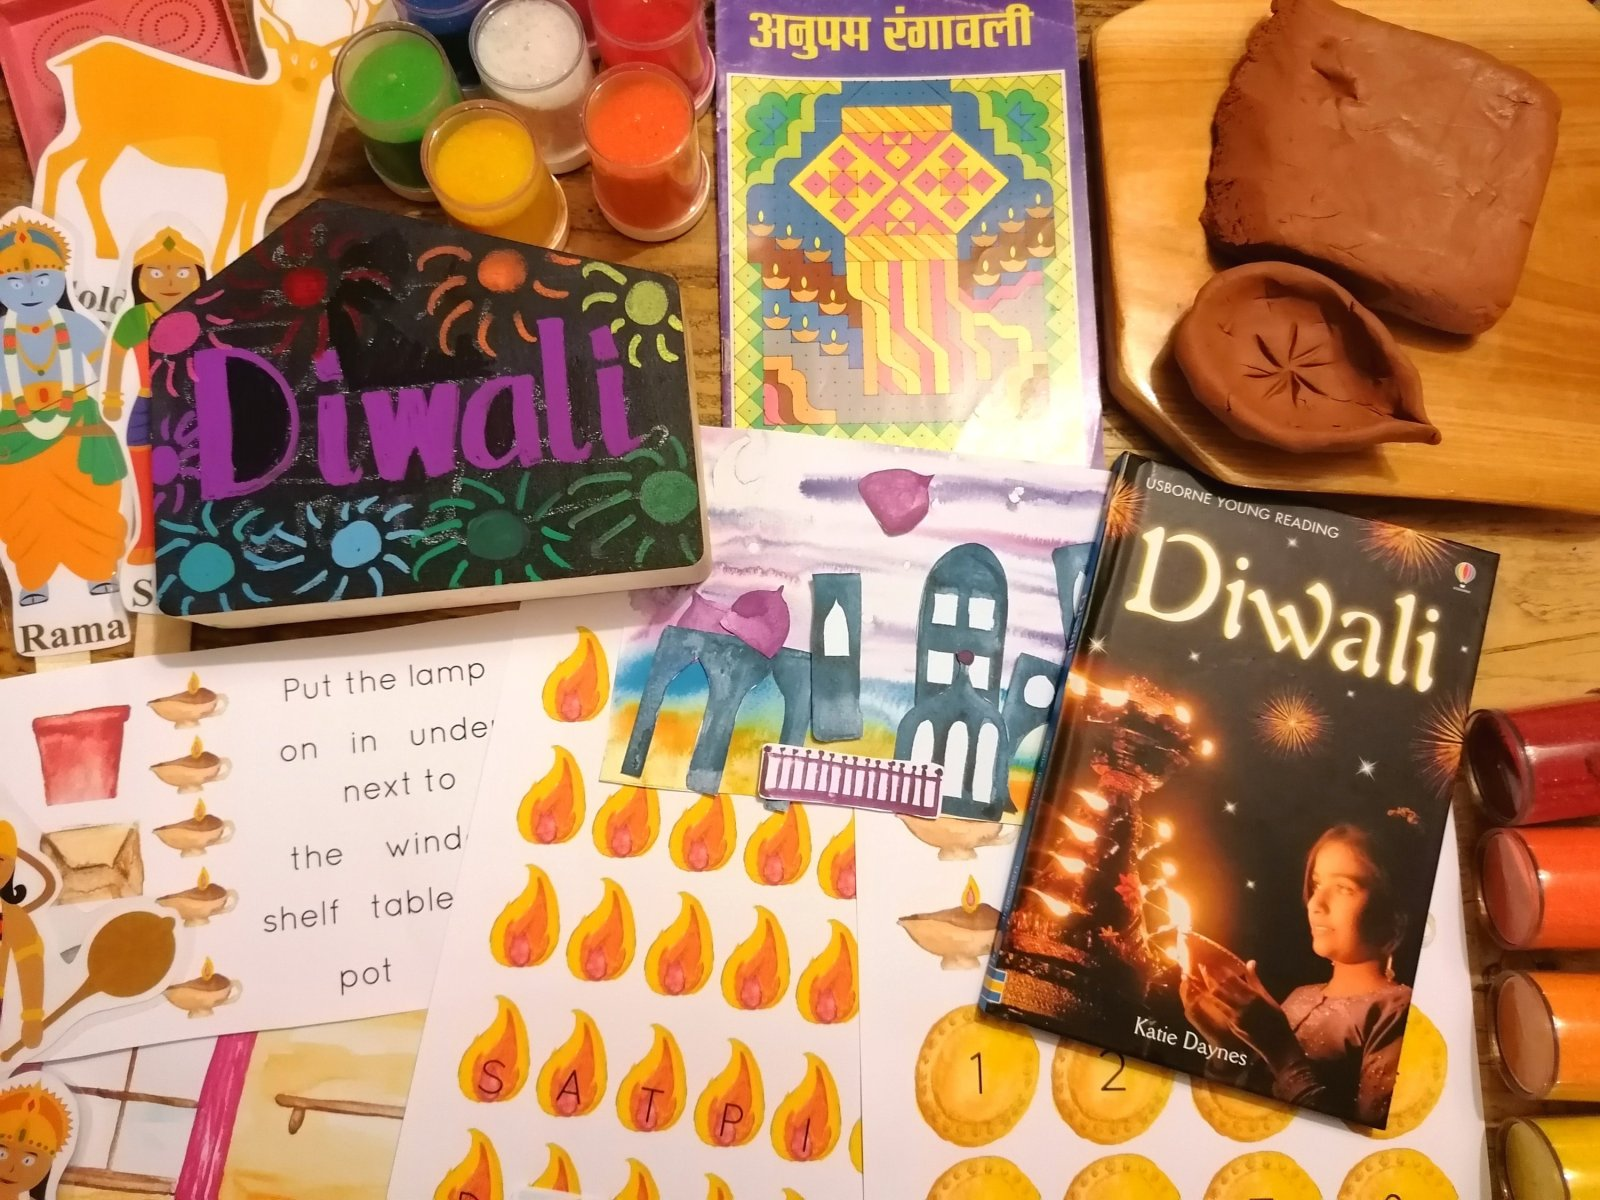 Diwali - diwali celebrations - 2019 - celebrations - festivals - diva lamp - Rangoli patterns - Rama and Sita - early years - topic ideas and themes